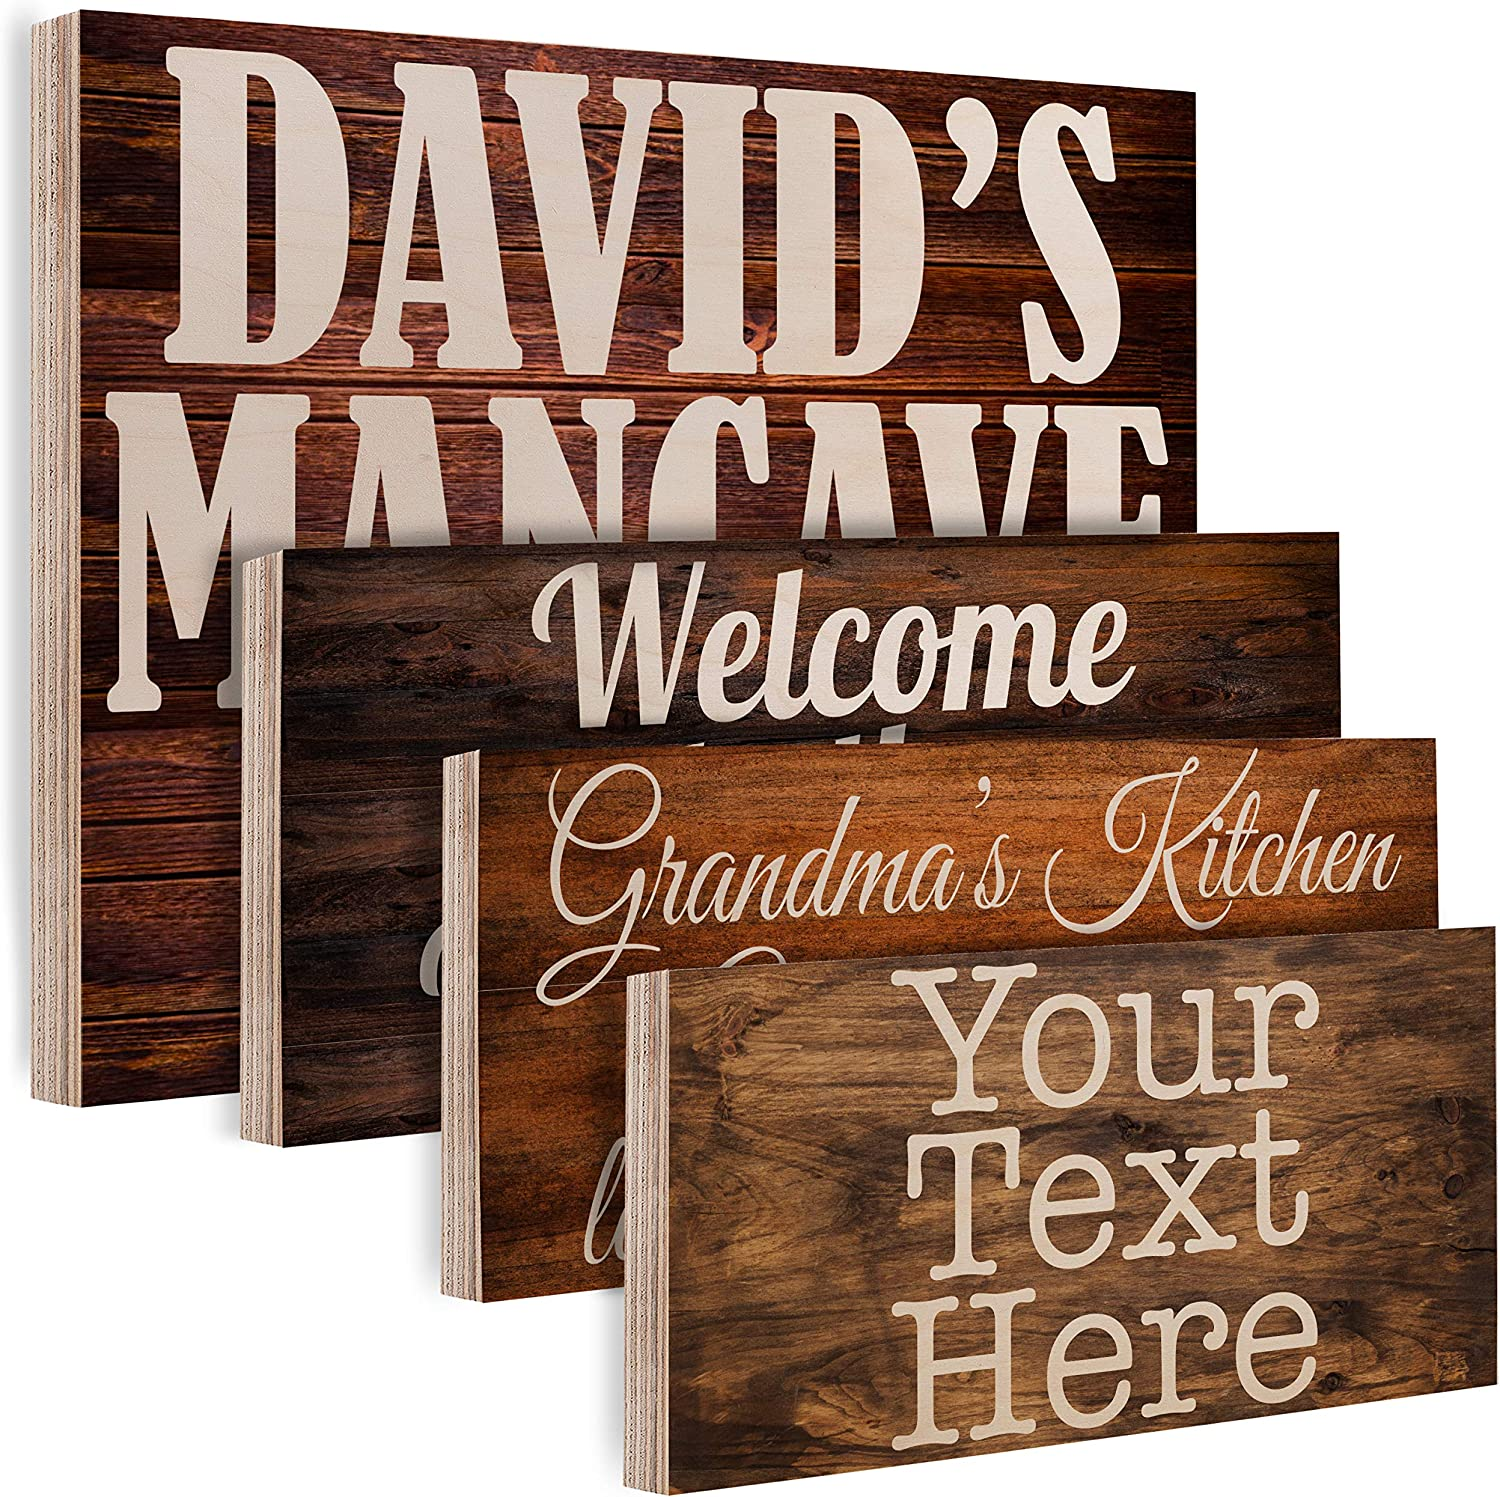 Personalized Wood Signs for Gift - Customized Wooden Board, Plank Decoration Gifts - Custom Family Wood Sign, Name Date - Home Kitchen, Wall Art Farmhouse Vintage Rustic Wall Decor Different Size -C01